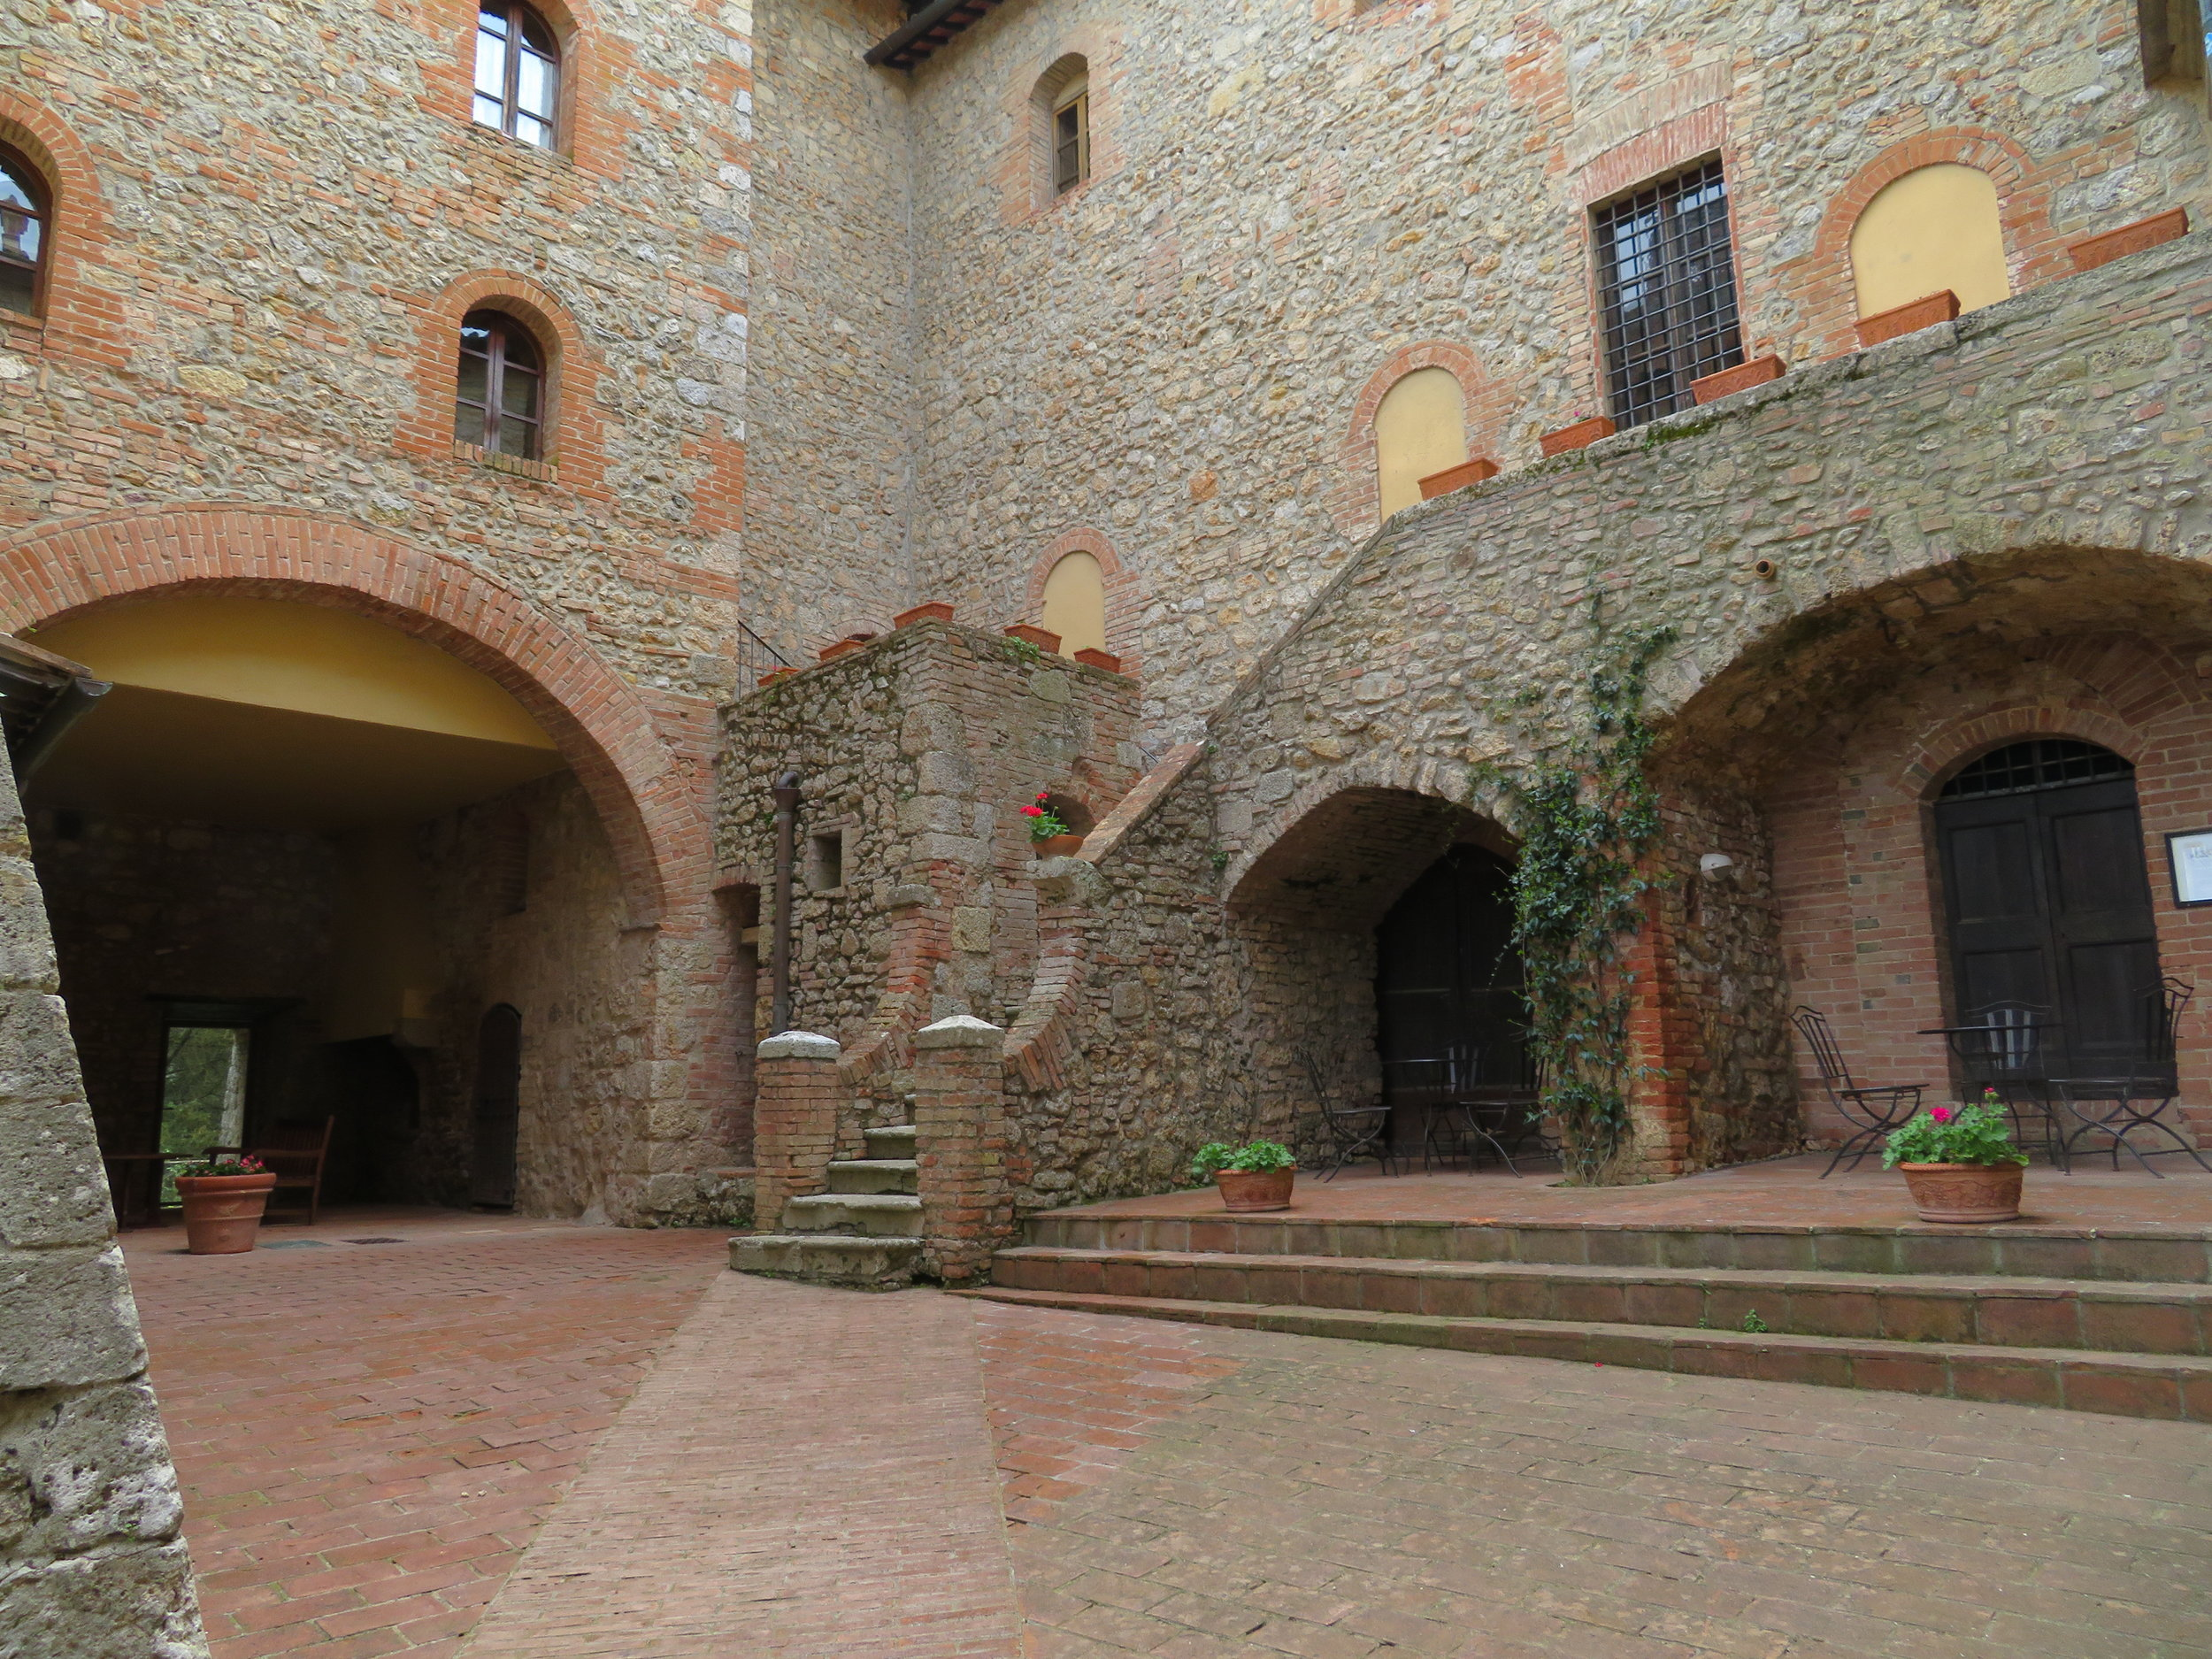 Castel Pietrato is an old castle that's been reclaimed into a winery and classy B&B. The owner invited to look around. What a lovely place!